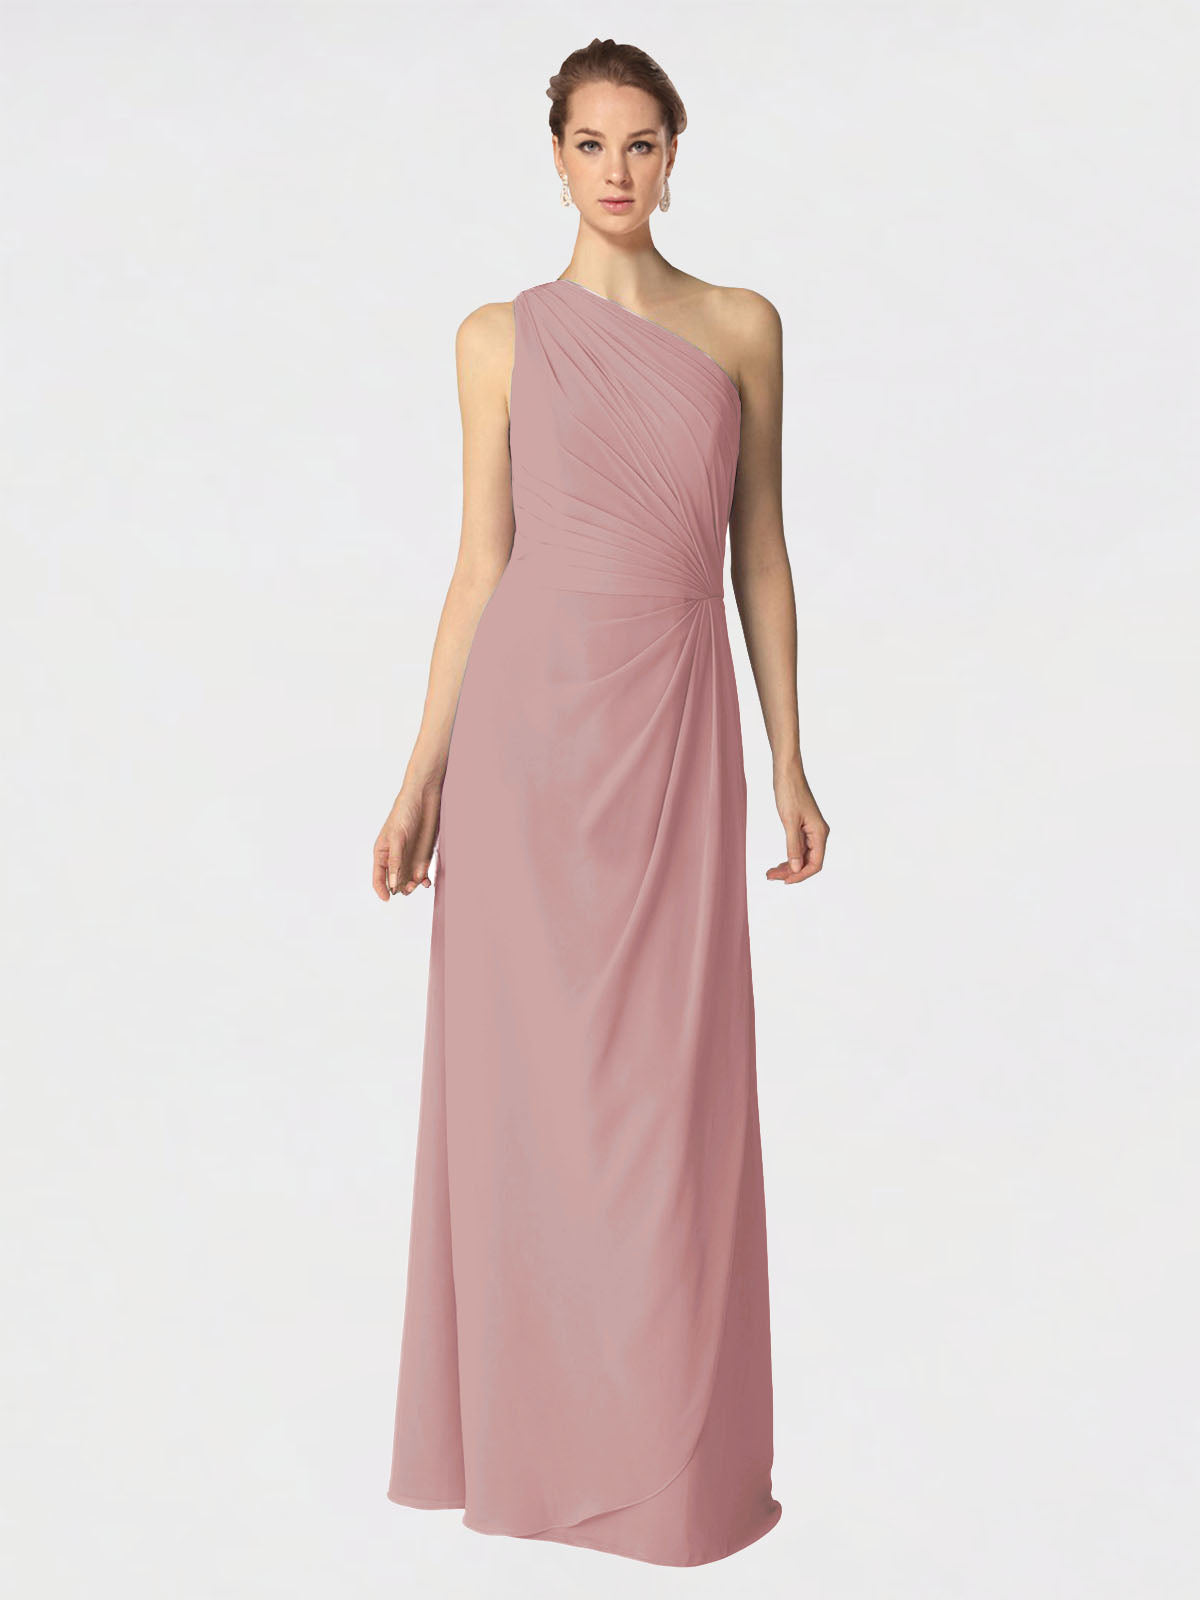 Long A-Line One Shoulder Sleeveless Dusty Pink Chiffon Bridesmaid Dress Aurora